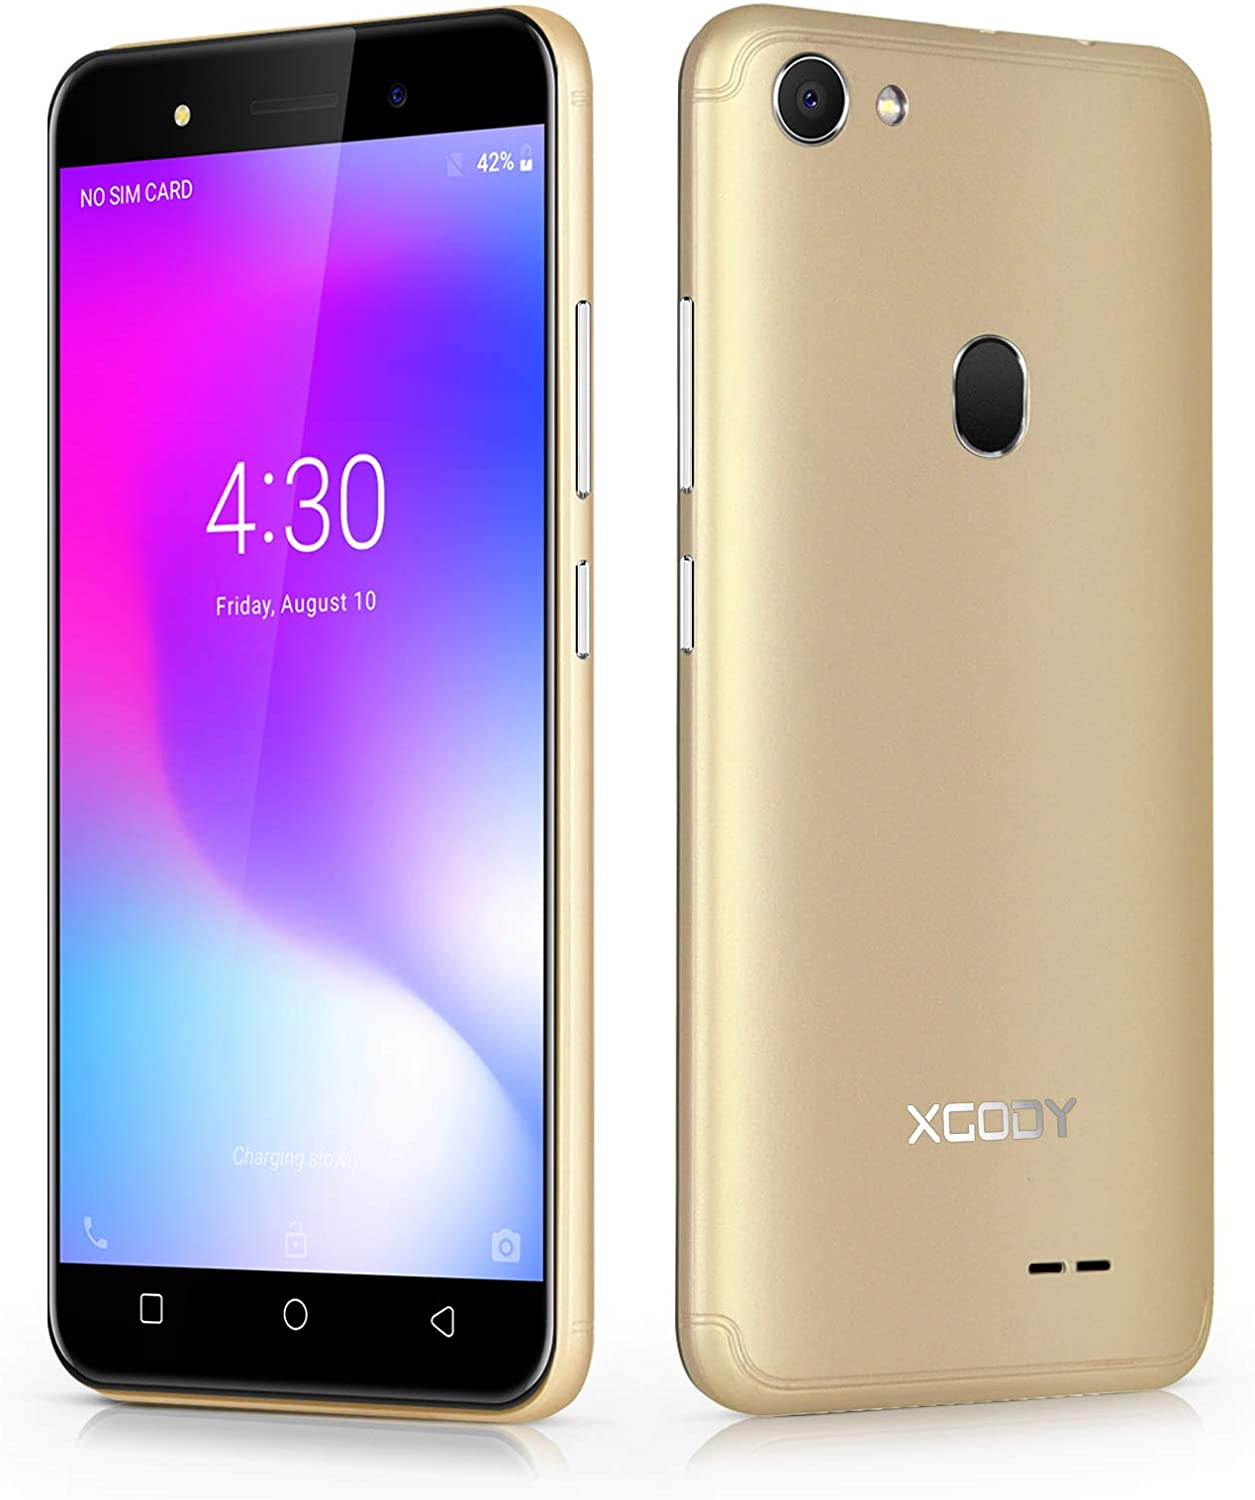 Xgody X6 Android Go 8.1 Smartphone Unlocked, 5 Inch Sim Free Mobile Phone 3G Dual SIM 1GB RAM+8GB ROM 13MP+5MP Dual Camera, WiFi, GPS BT Cell Phone (Gold): Amazon.es: Electrónica